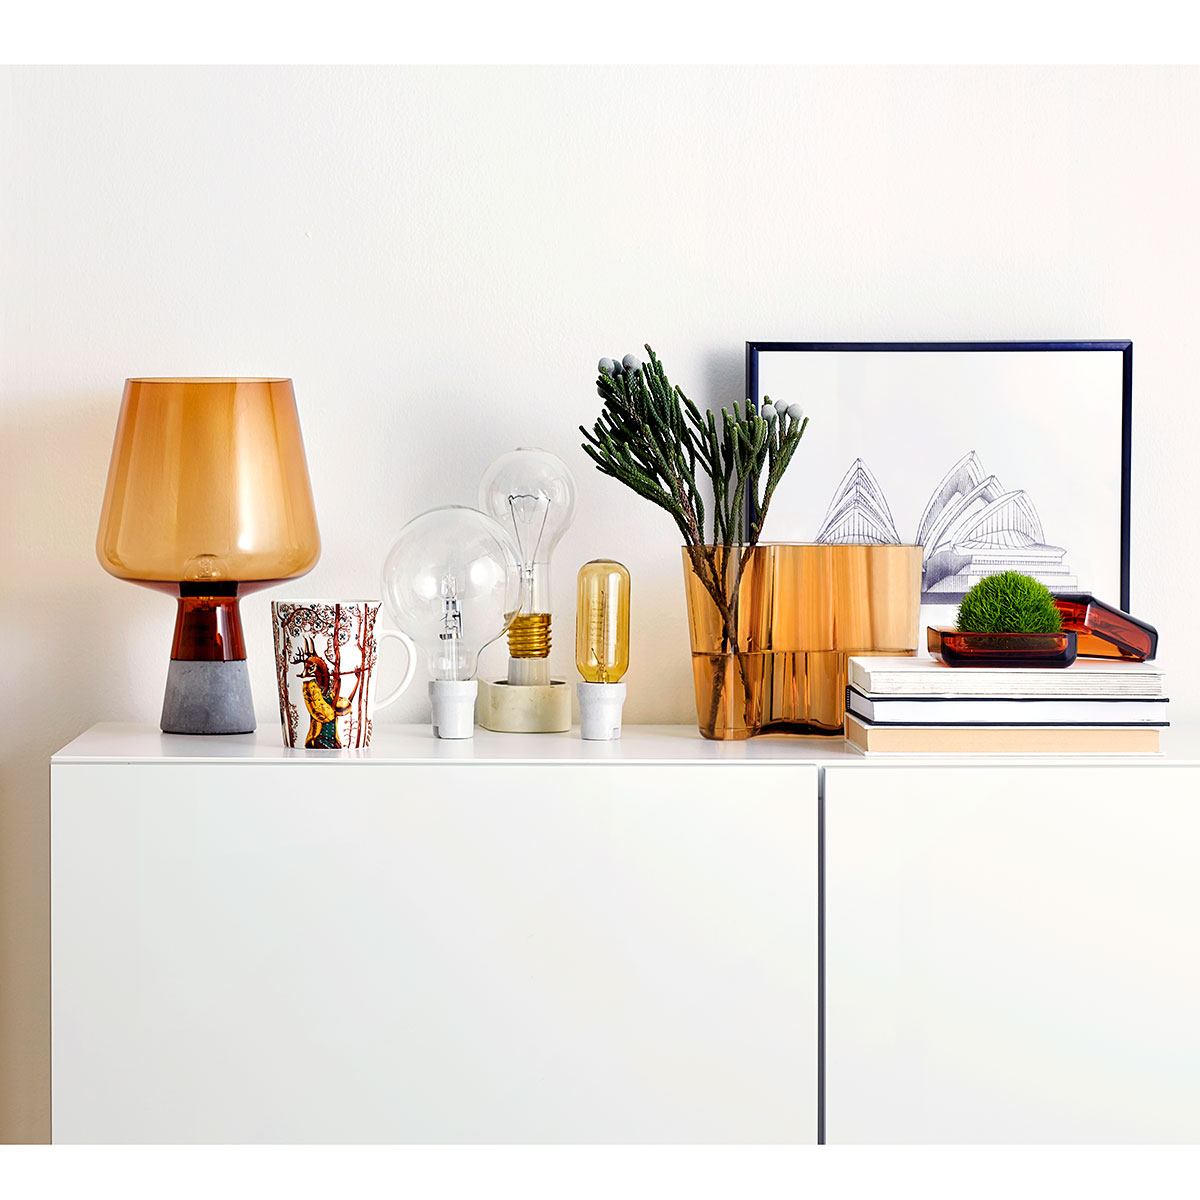 iittala aalto desert vase 6 1 4 iittala aalto desert. Black Bedroom Furniture Sets. Home Design Ideas